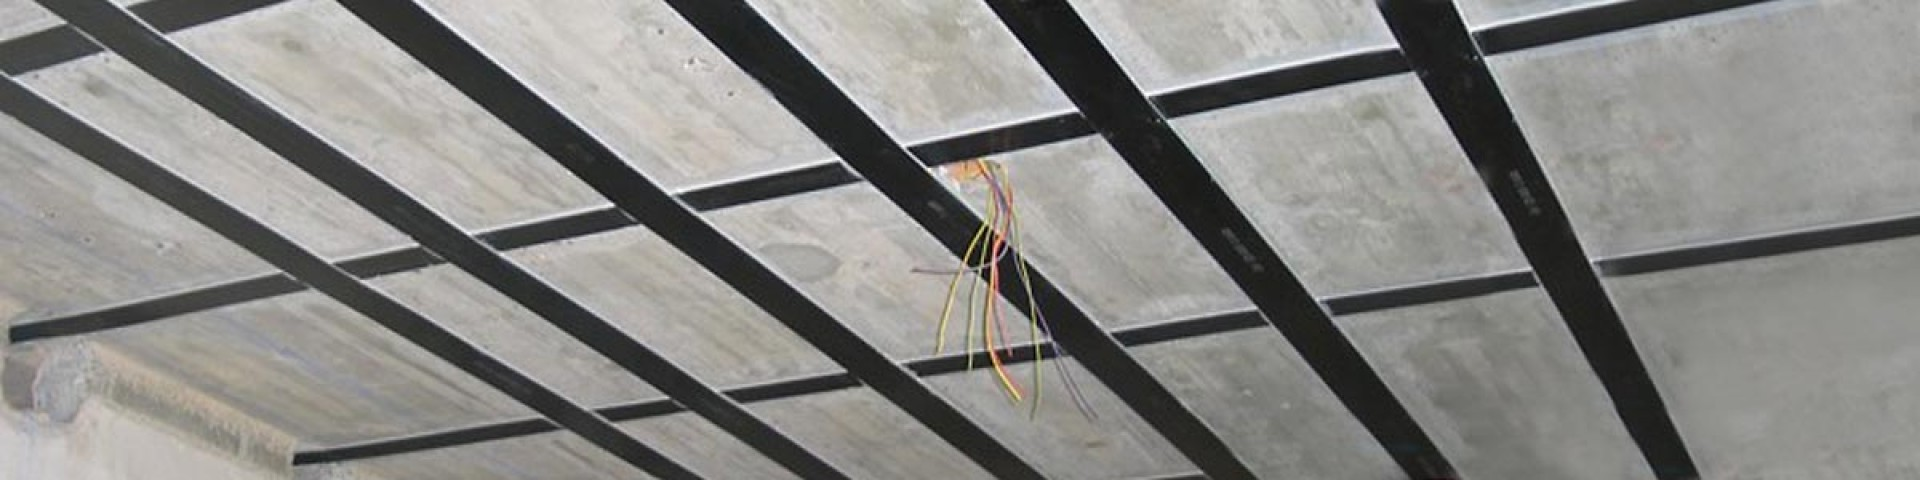 Strengthening of concrete structures with CFRP strips